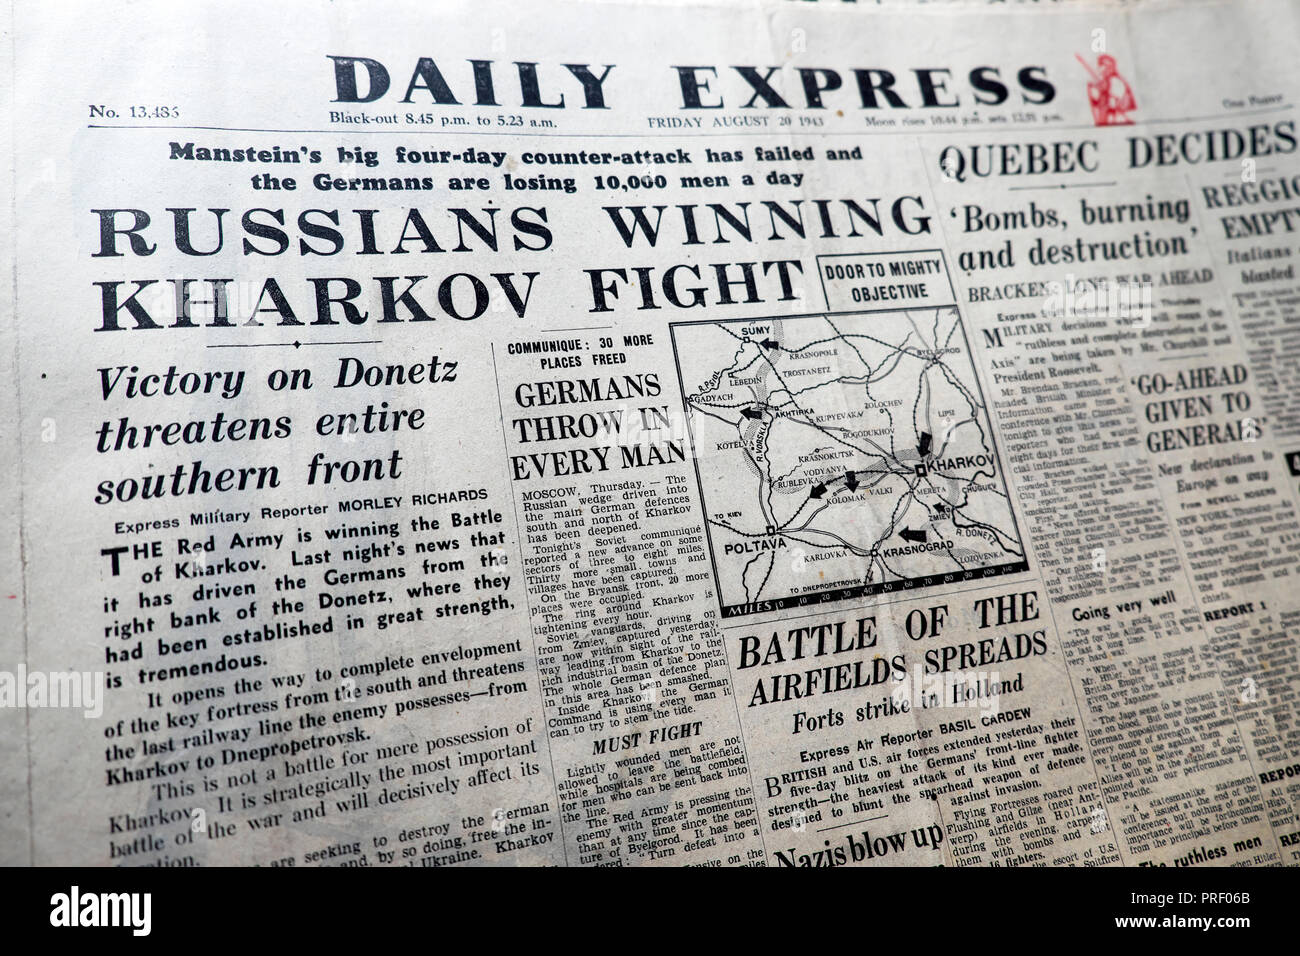 'Russians Winning Kharkov Fight'  front page headlines of the Daily Express newspaper August 20 1943 London UK  historical archive - Stock Image